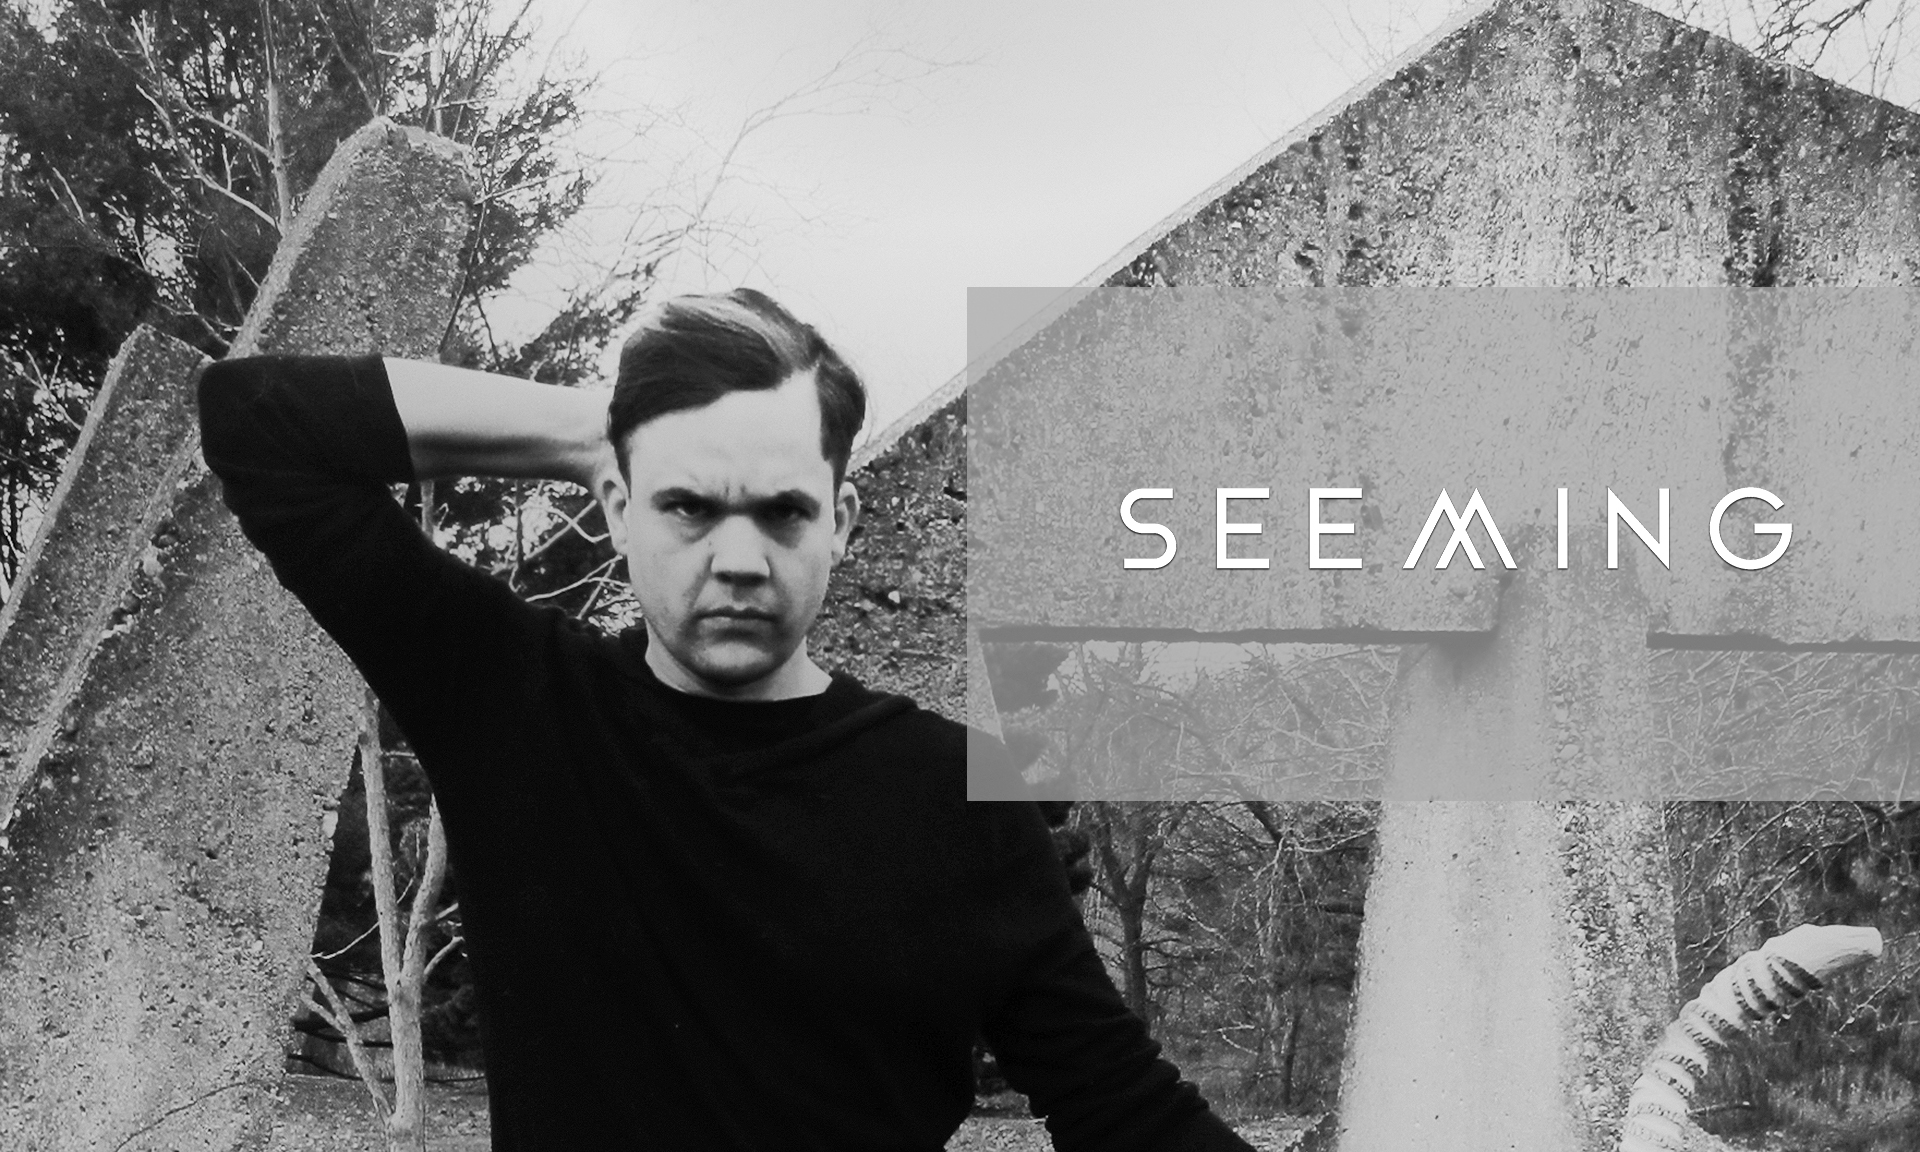 <p>SEEMING is equal parts transcendent pop and eco-tinged nihilism. Led by author/theorist/composer Alex Reed, the New York-based act broke out in 2014 with their debut single 'The Burial' and their first LP 'Madness &amp; Extinction', earning an Album of the Year award from darkwave tastemakers IDieYouDie. Having previously made four [&hellip;]</p>